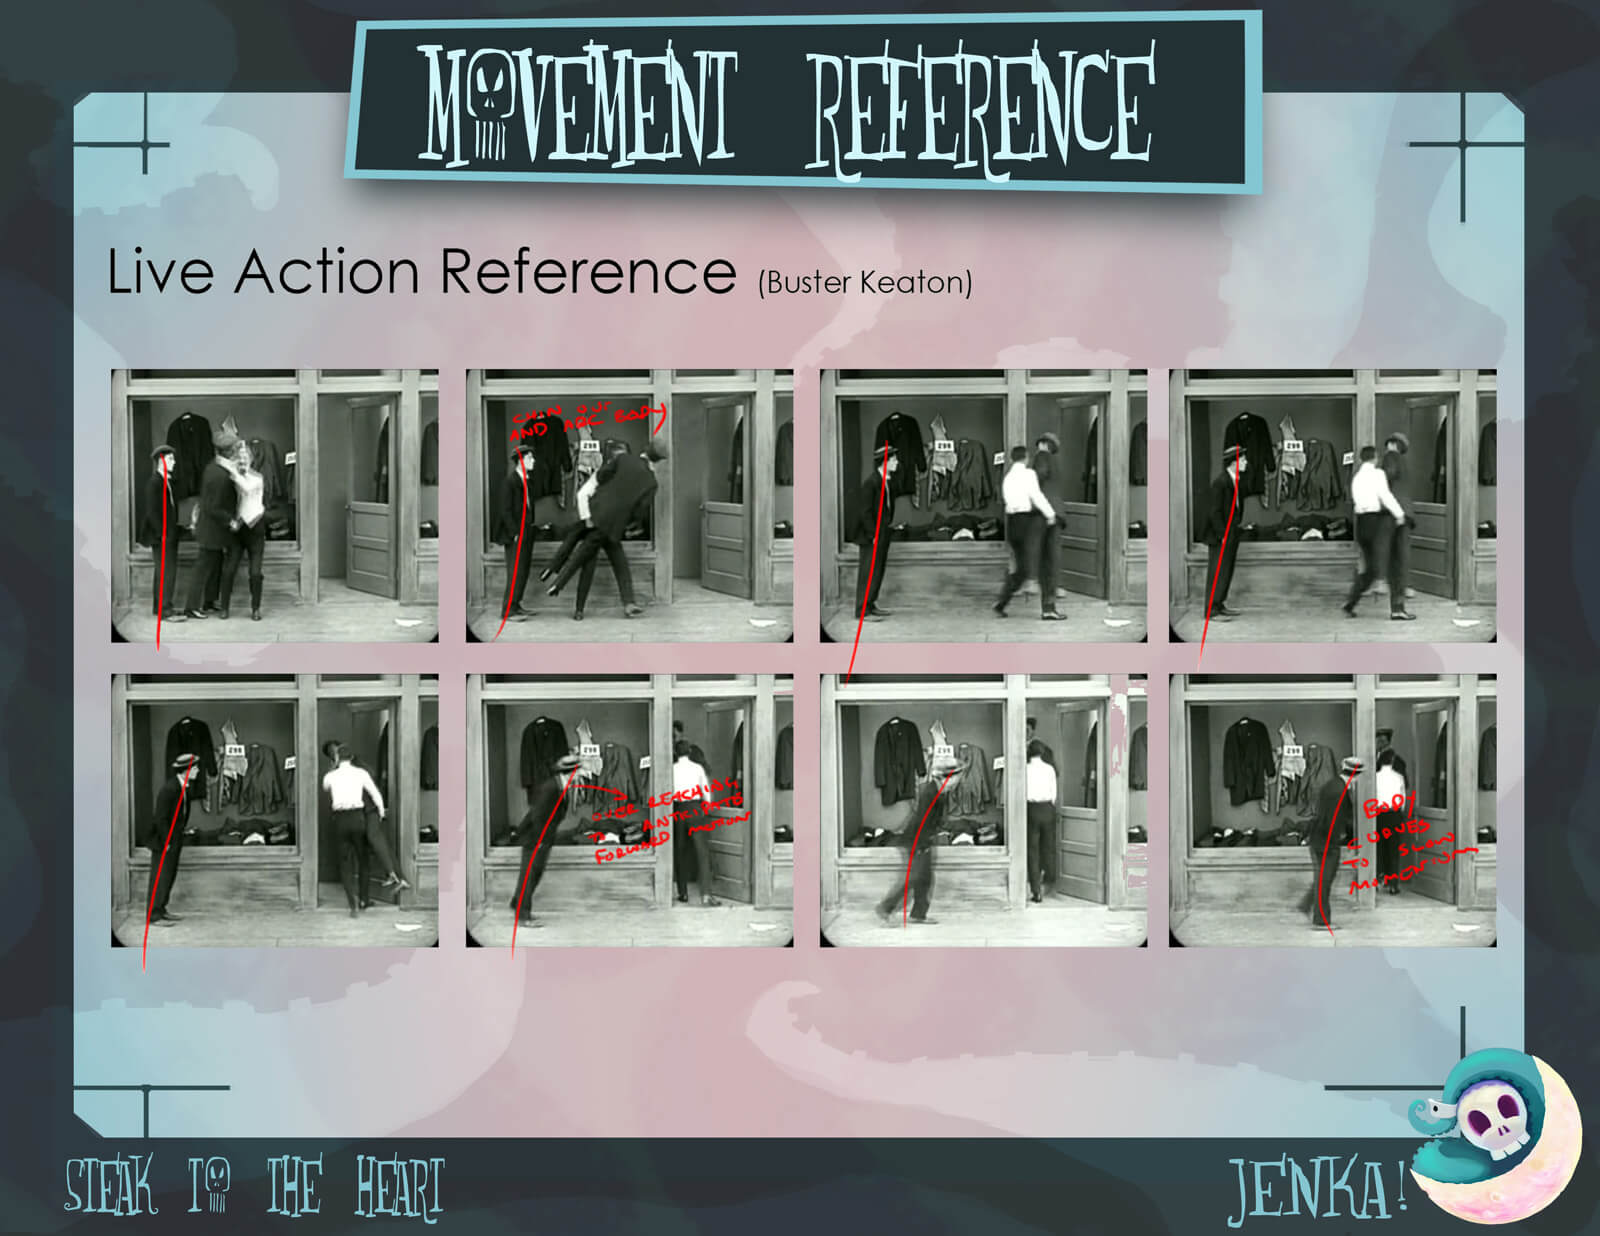 Movement Reference slide for the film Steak to the Heart, depicting 8 images from a Buster Keaton film as a reference